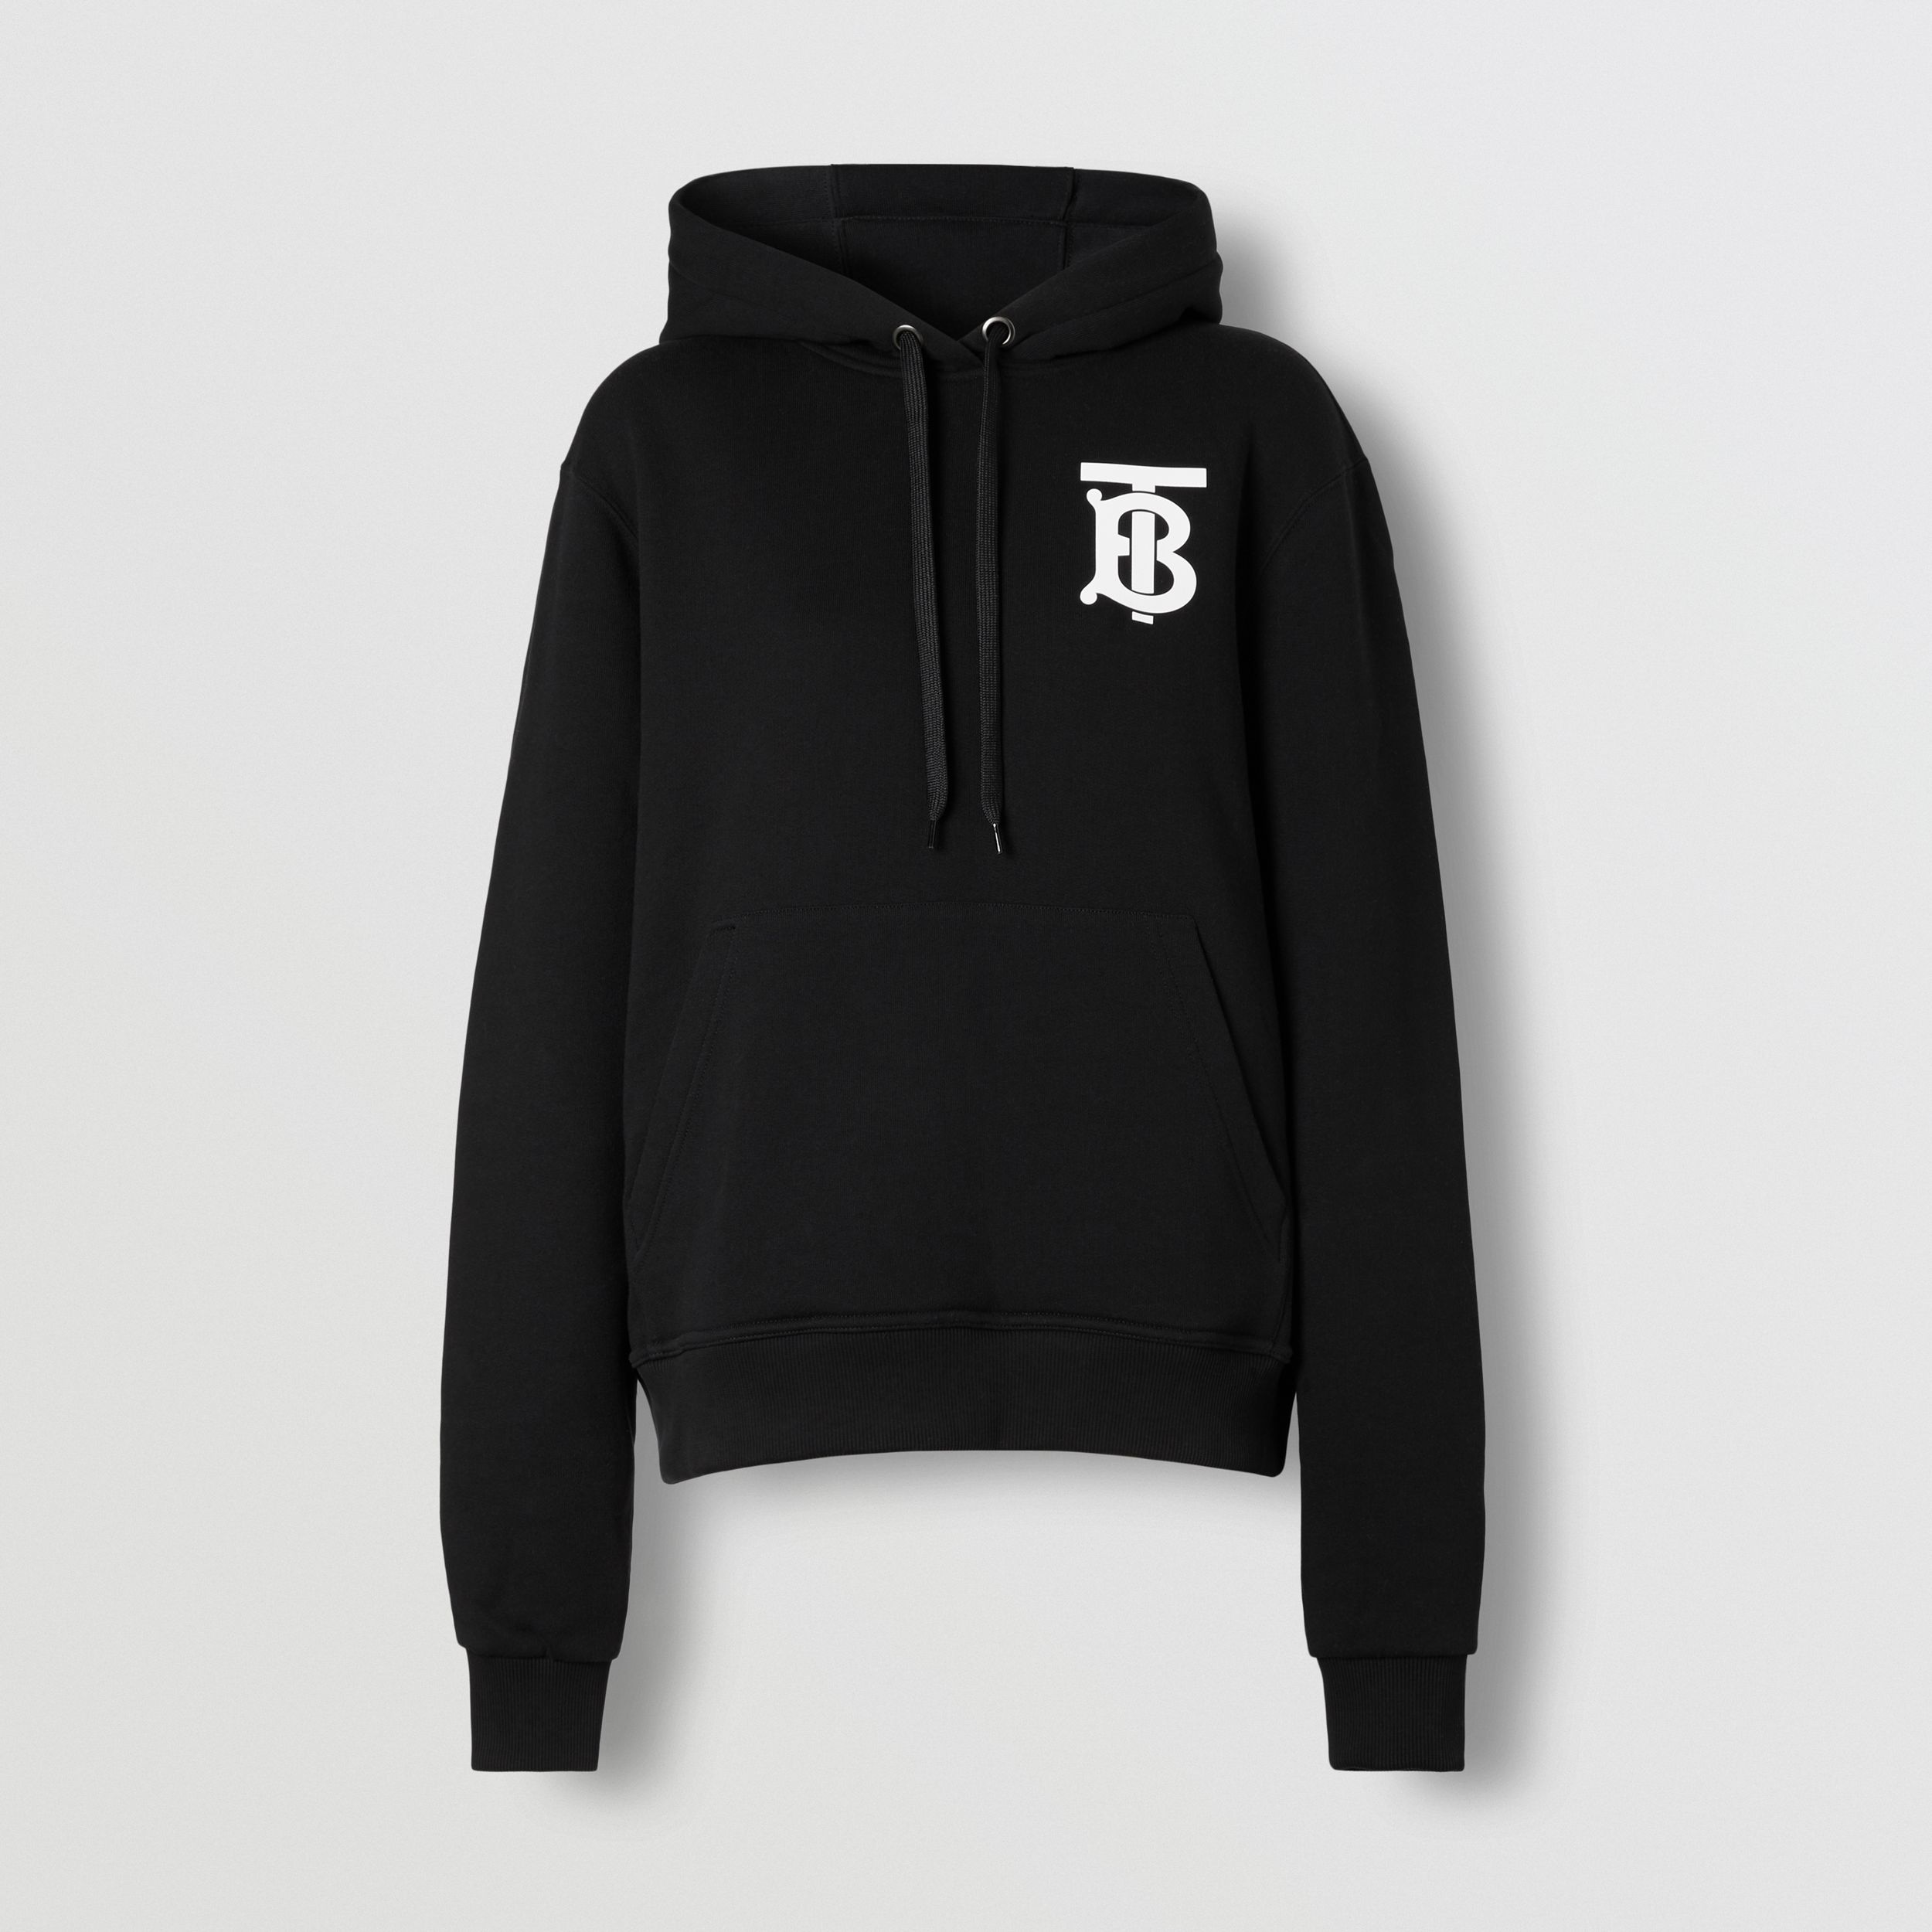 Monogram Motif Cotton Hoodie in Black - Women | Burberry Hong Kong S.A.R. - 4